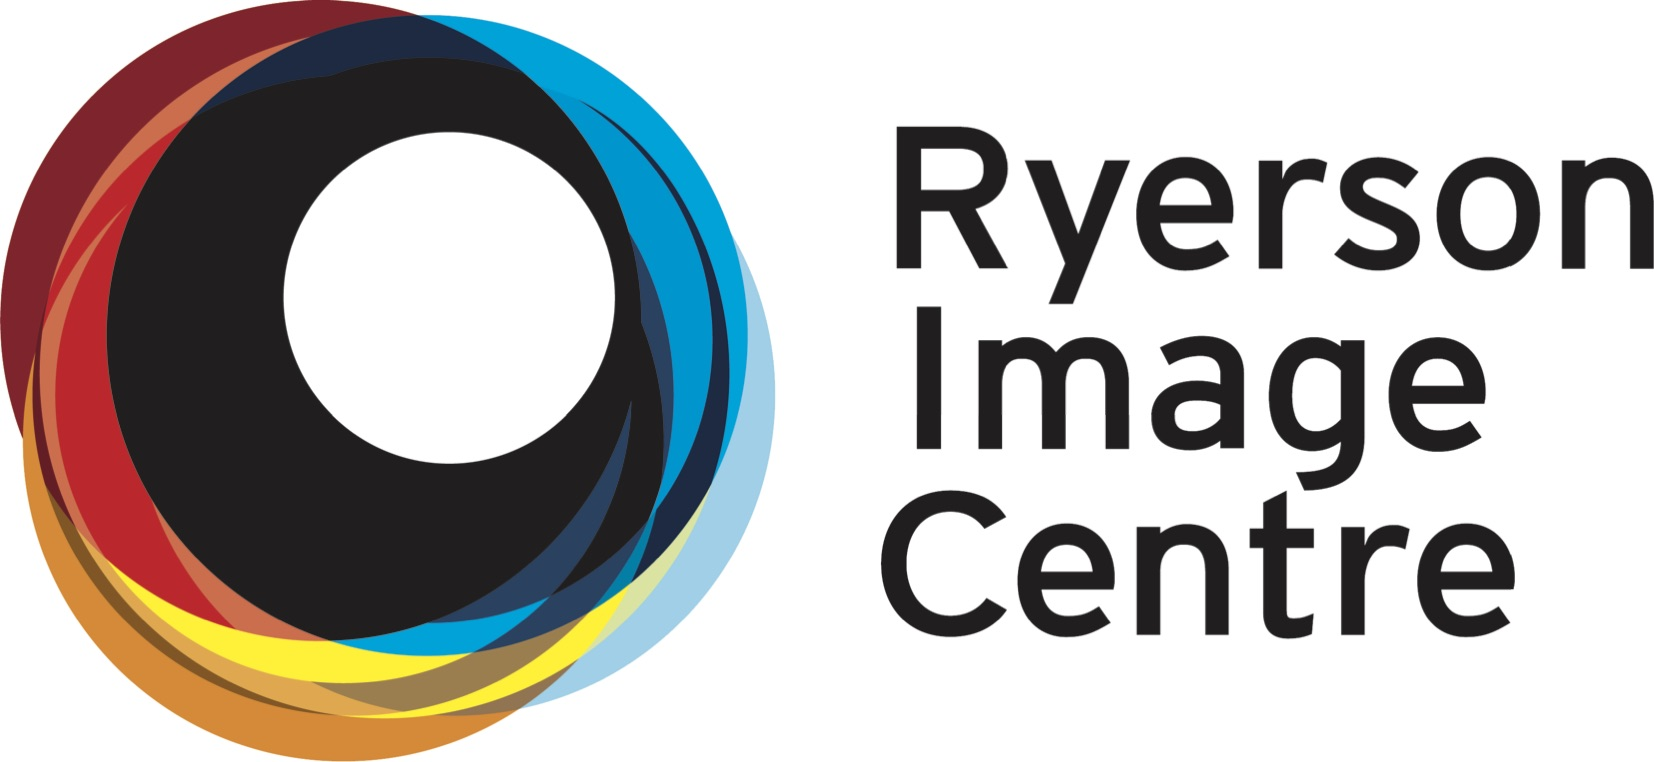 Ryerson Image Center